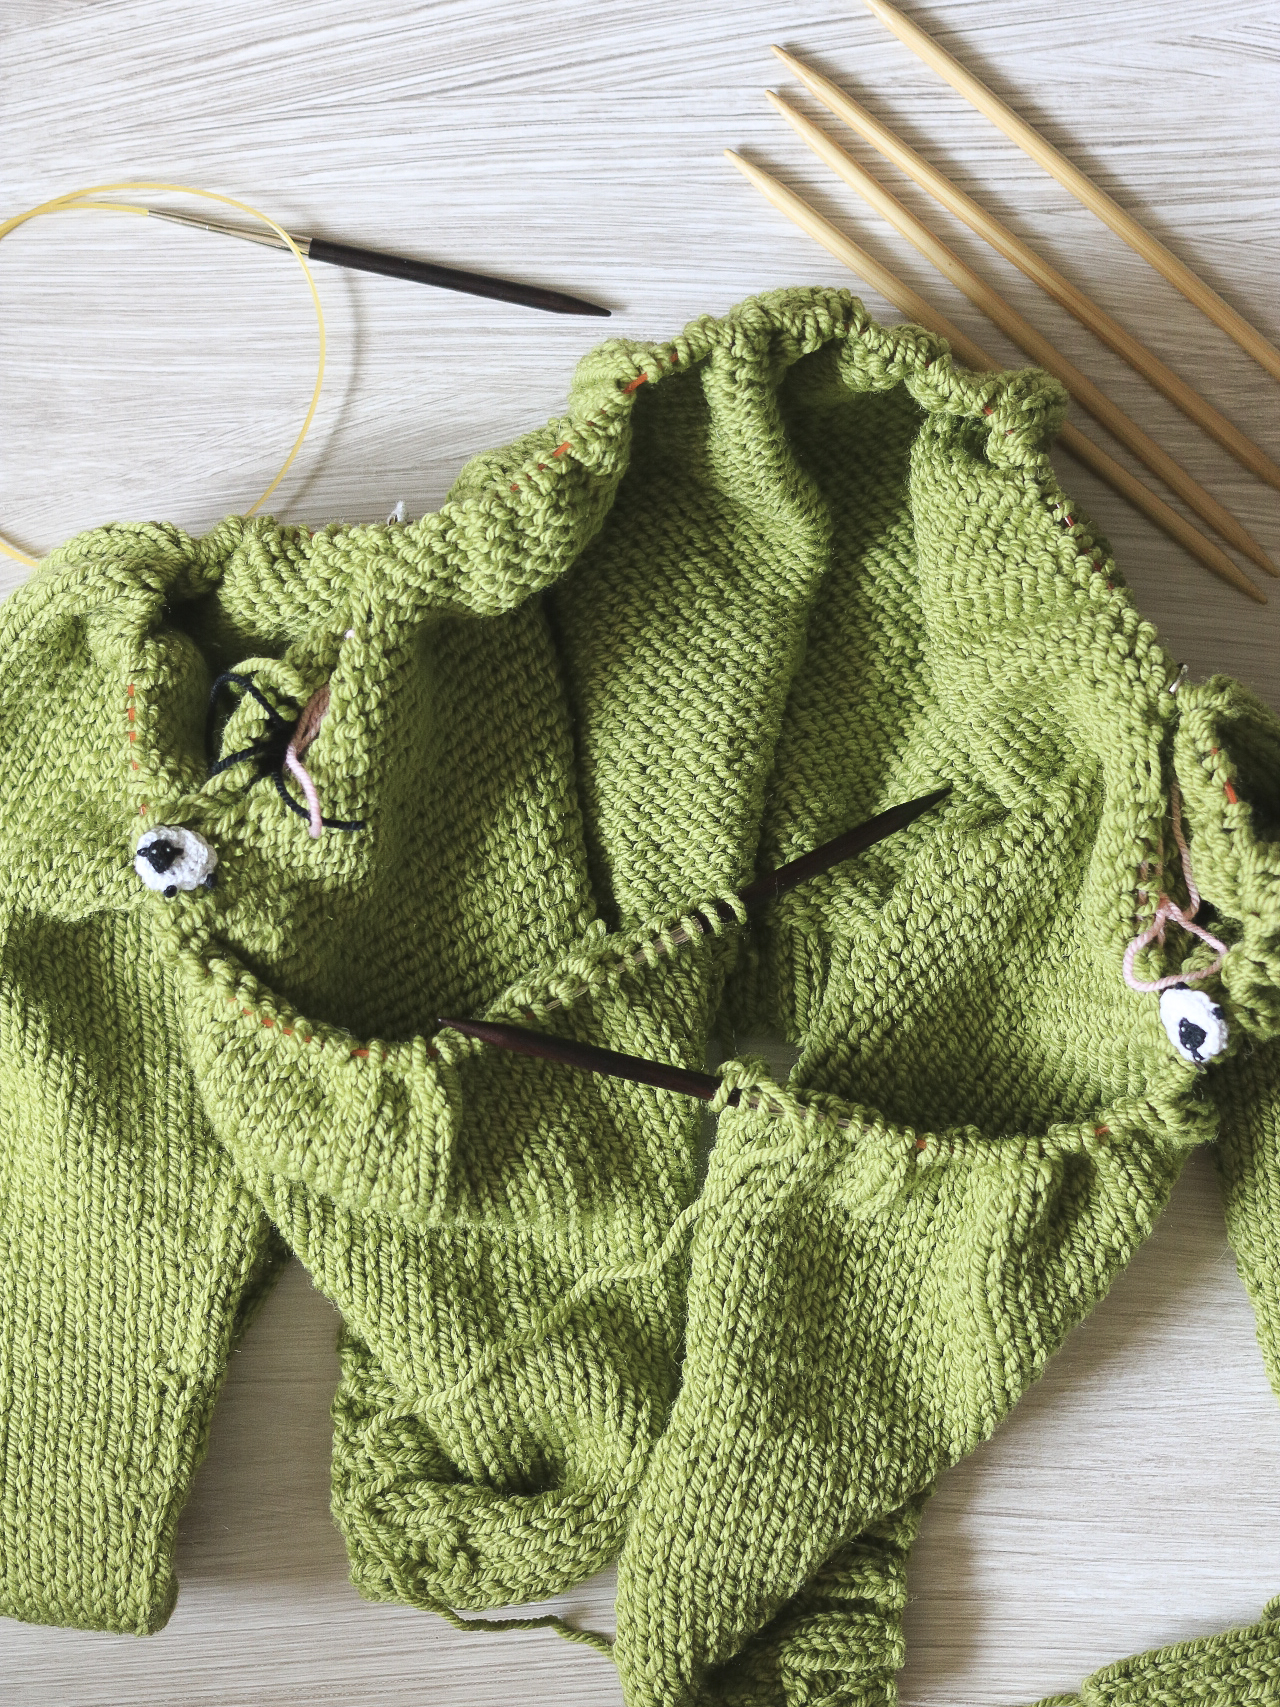 Knitting the Carbeth Cardigan together